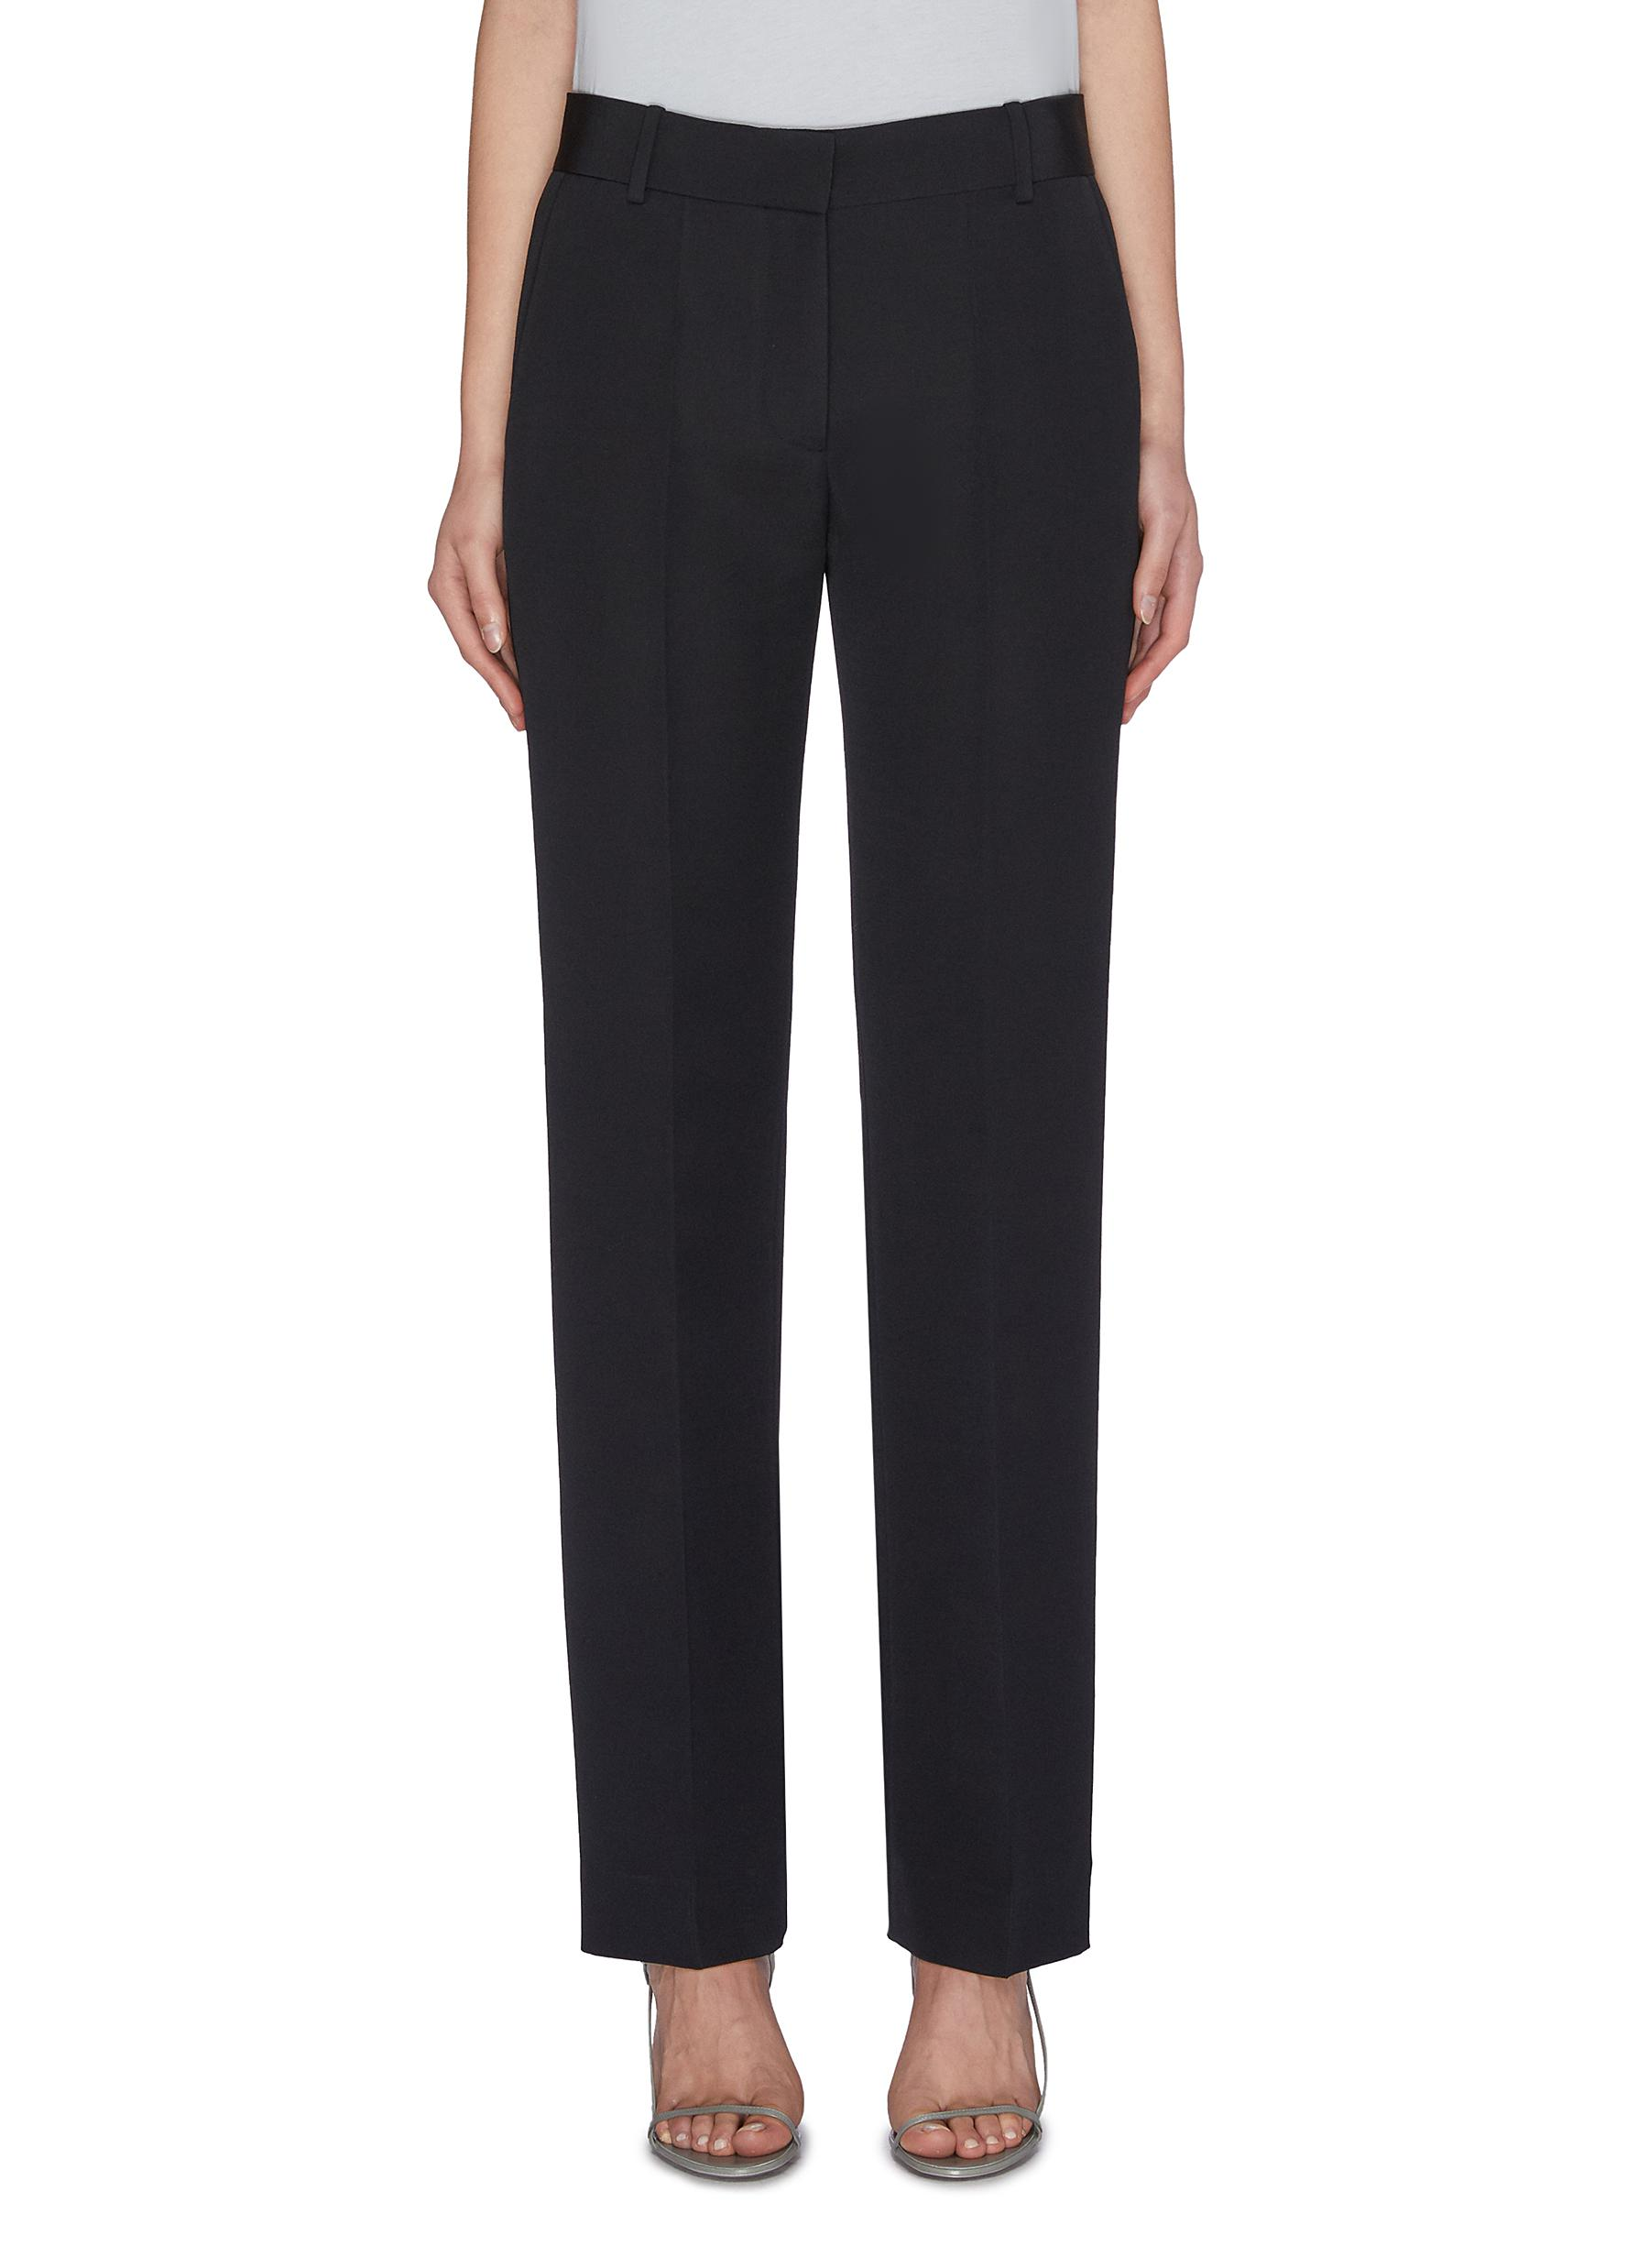 Buy The Row Pants & Shorts 'Tacome' wool-silk suiting pants